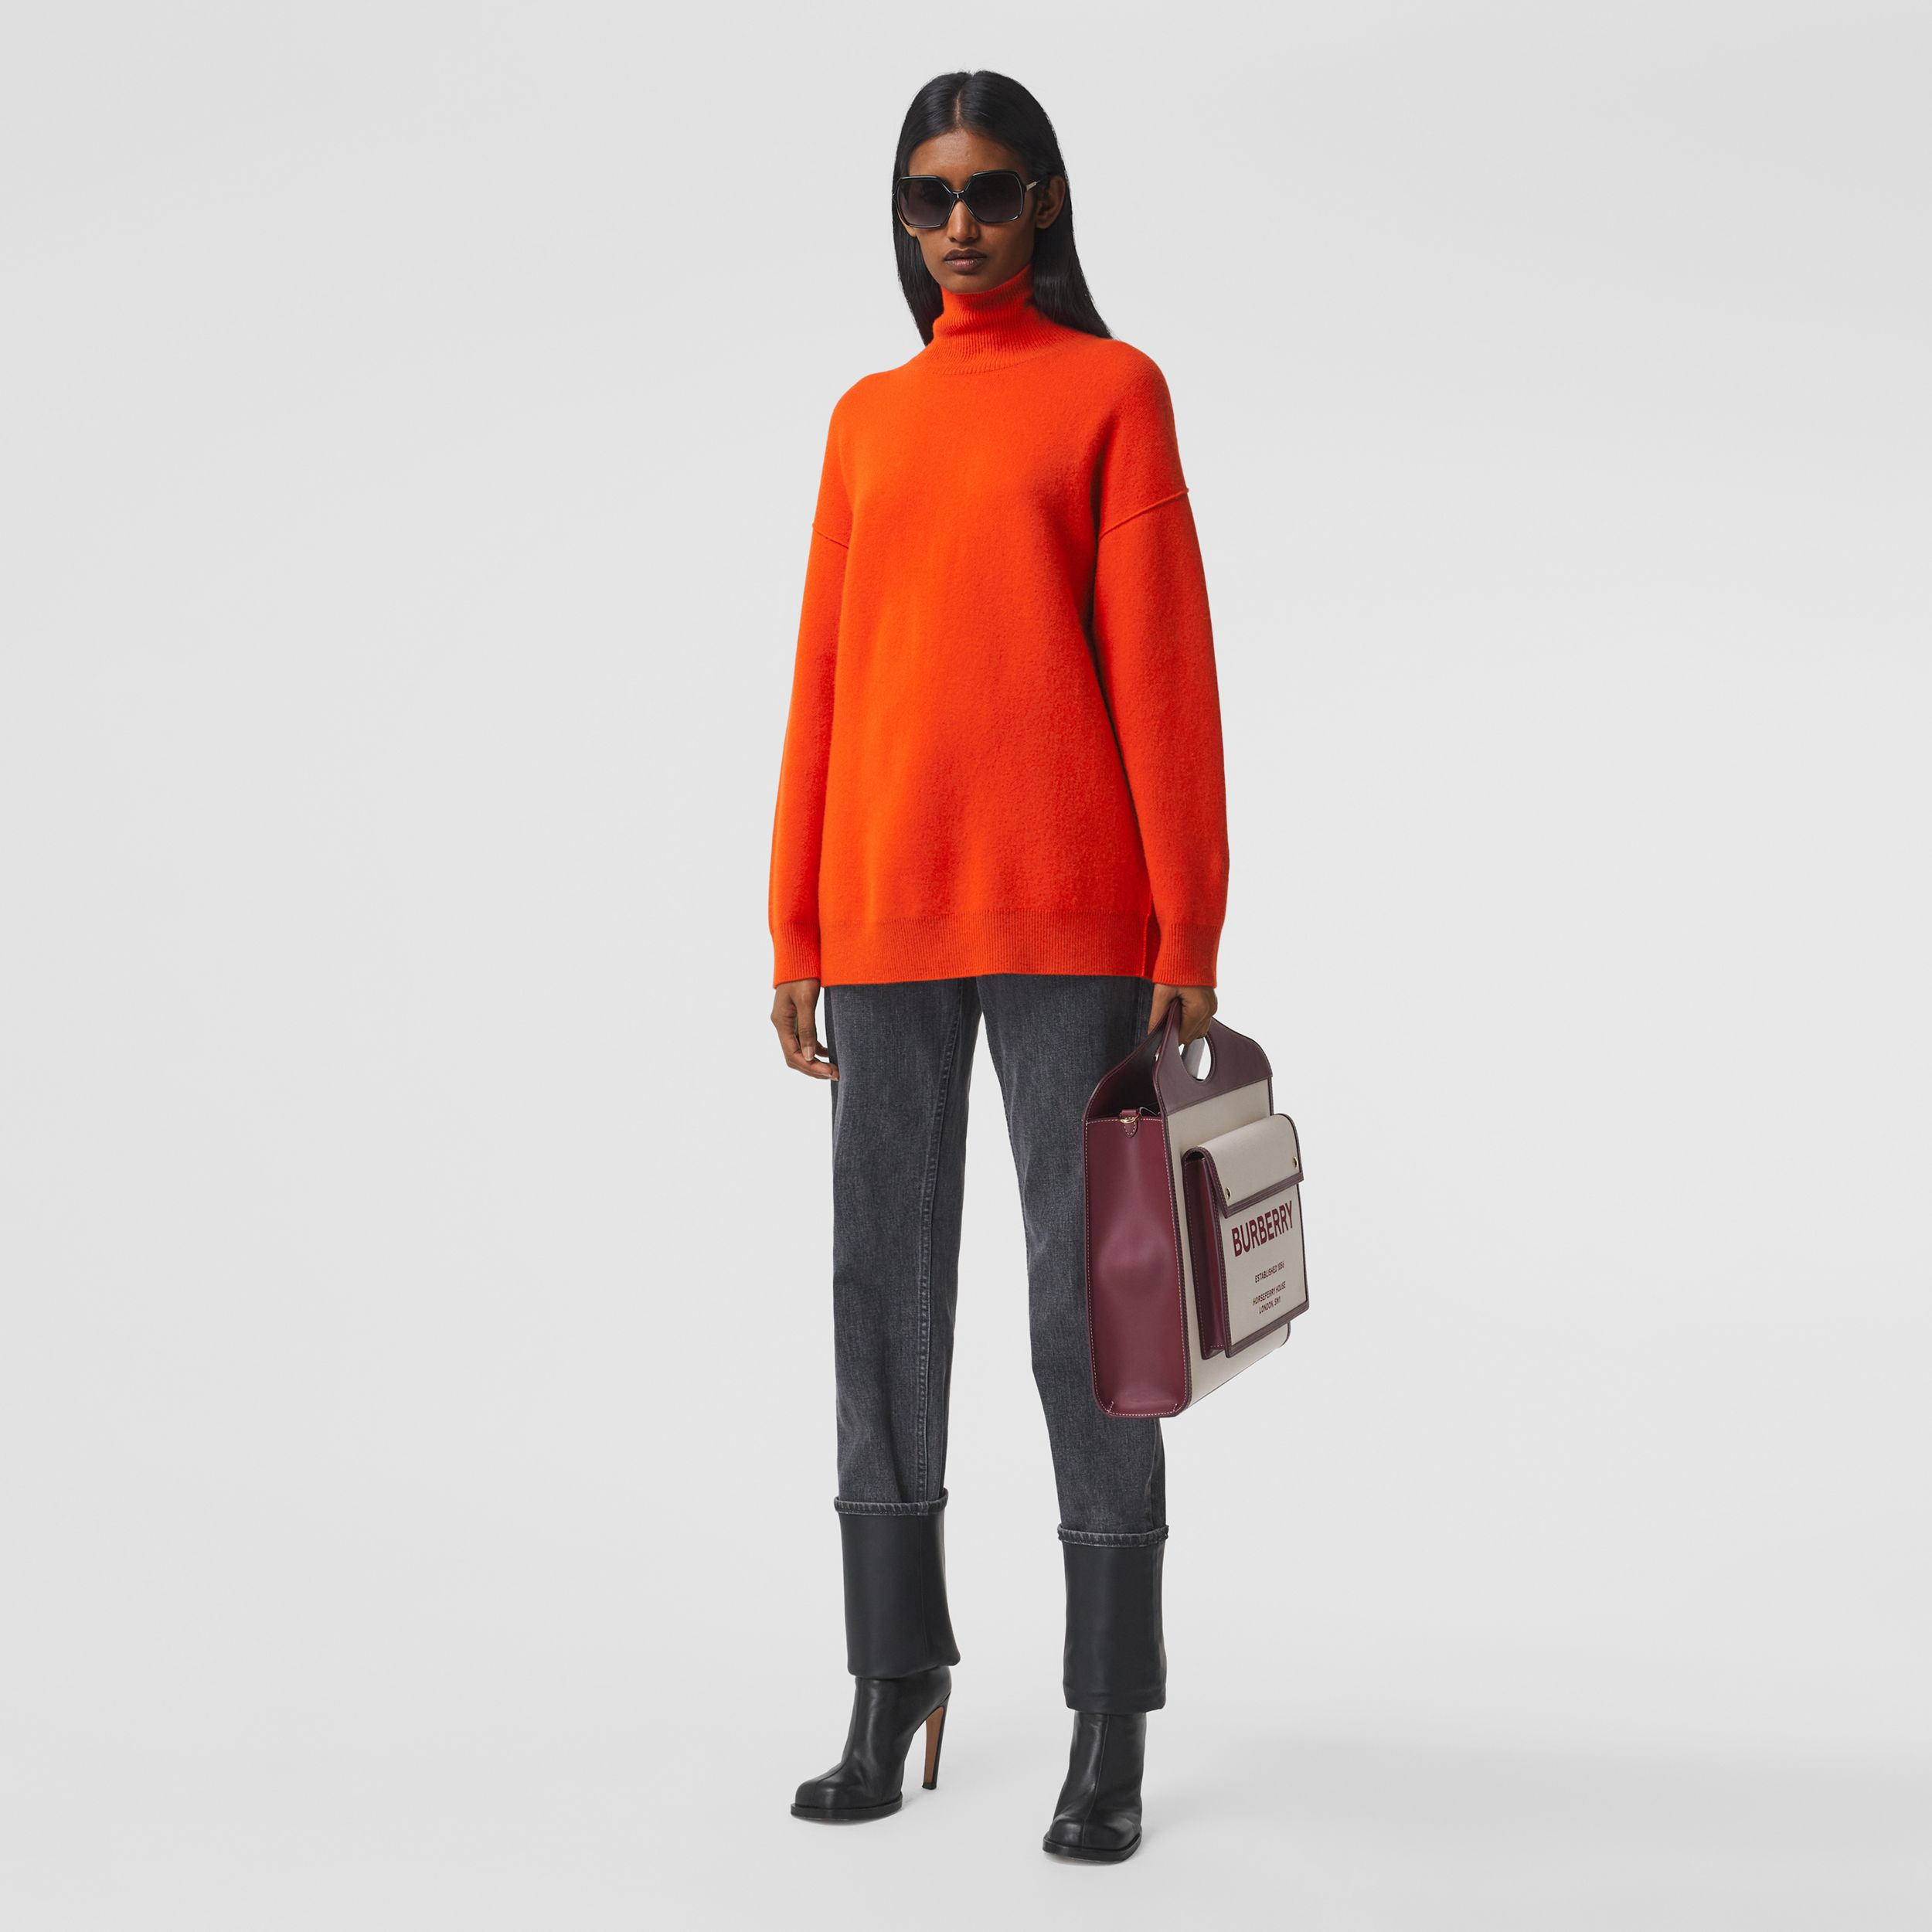 Monogram Motif Cashmere Blend Funnel Neck Sweater in Bright Orange - Women | Burberry - 1